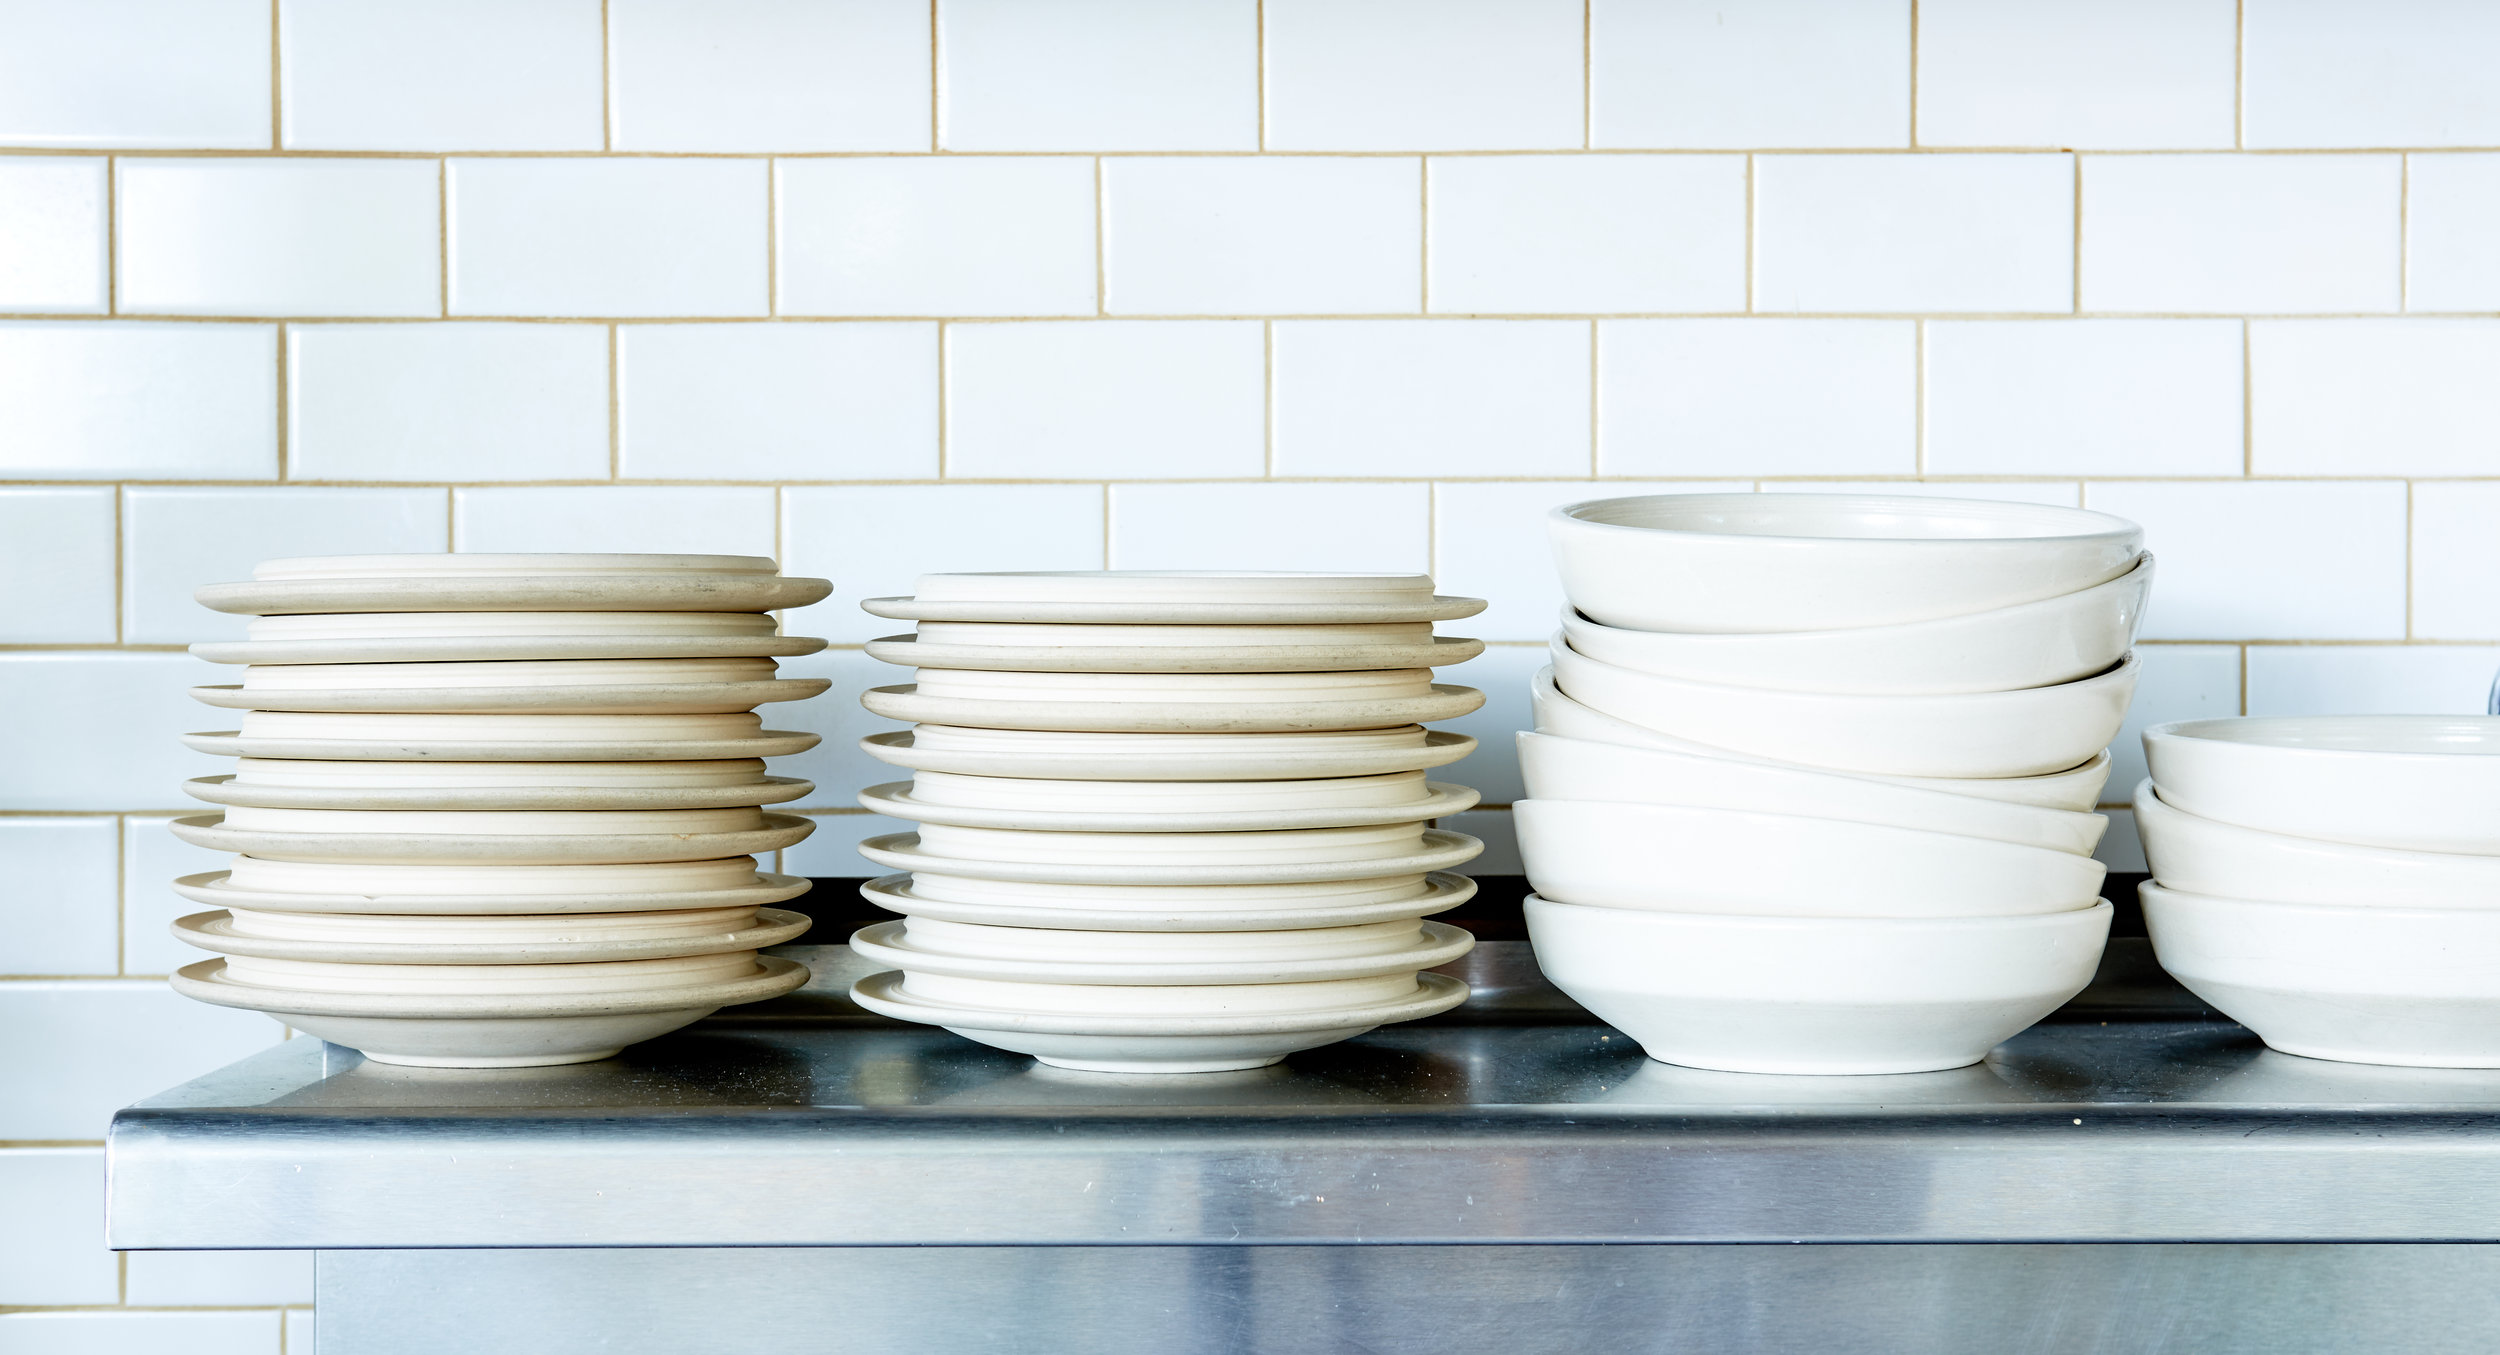 colin plate stack.jpg